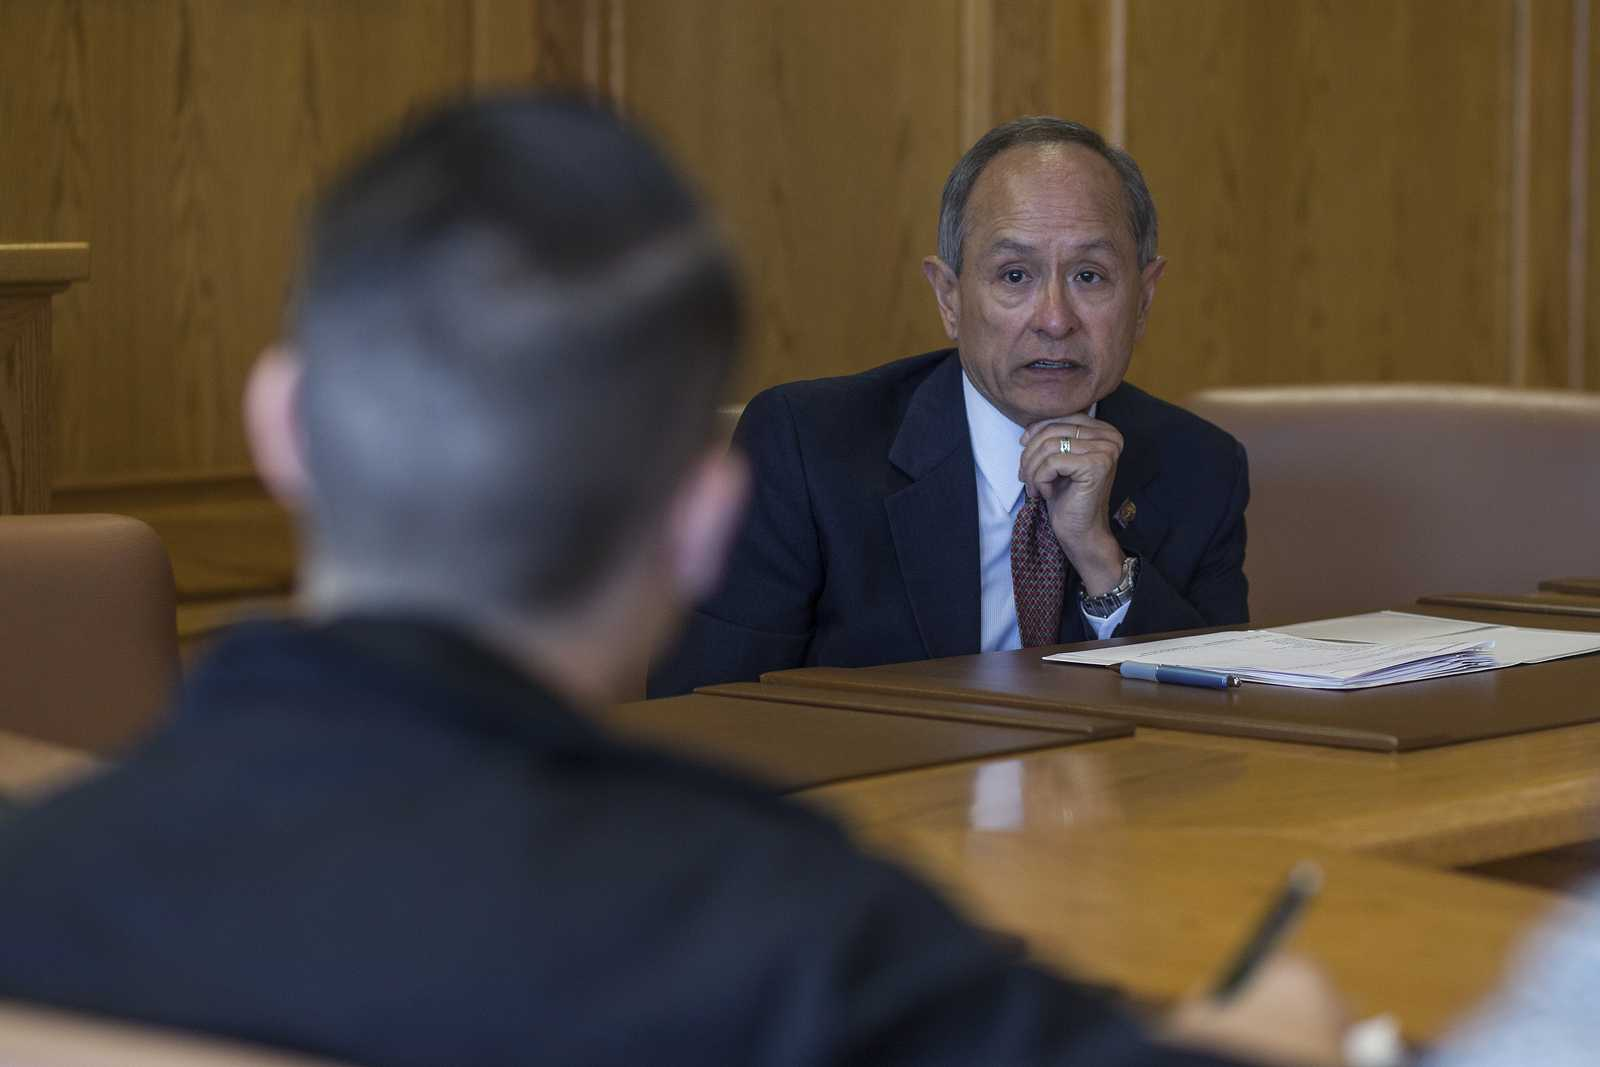 SF State president Leslie Wong answers a question from Matt Saincome about what the university is doing to prevent another Robert Shearer incident, during a press conference with Xpress editors Monday, Oct. 7, 2013 in a conference room in the administration building at SF State. Photo by Mike Hendrickson / Xpress